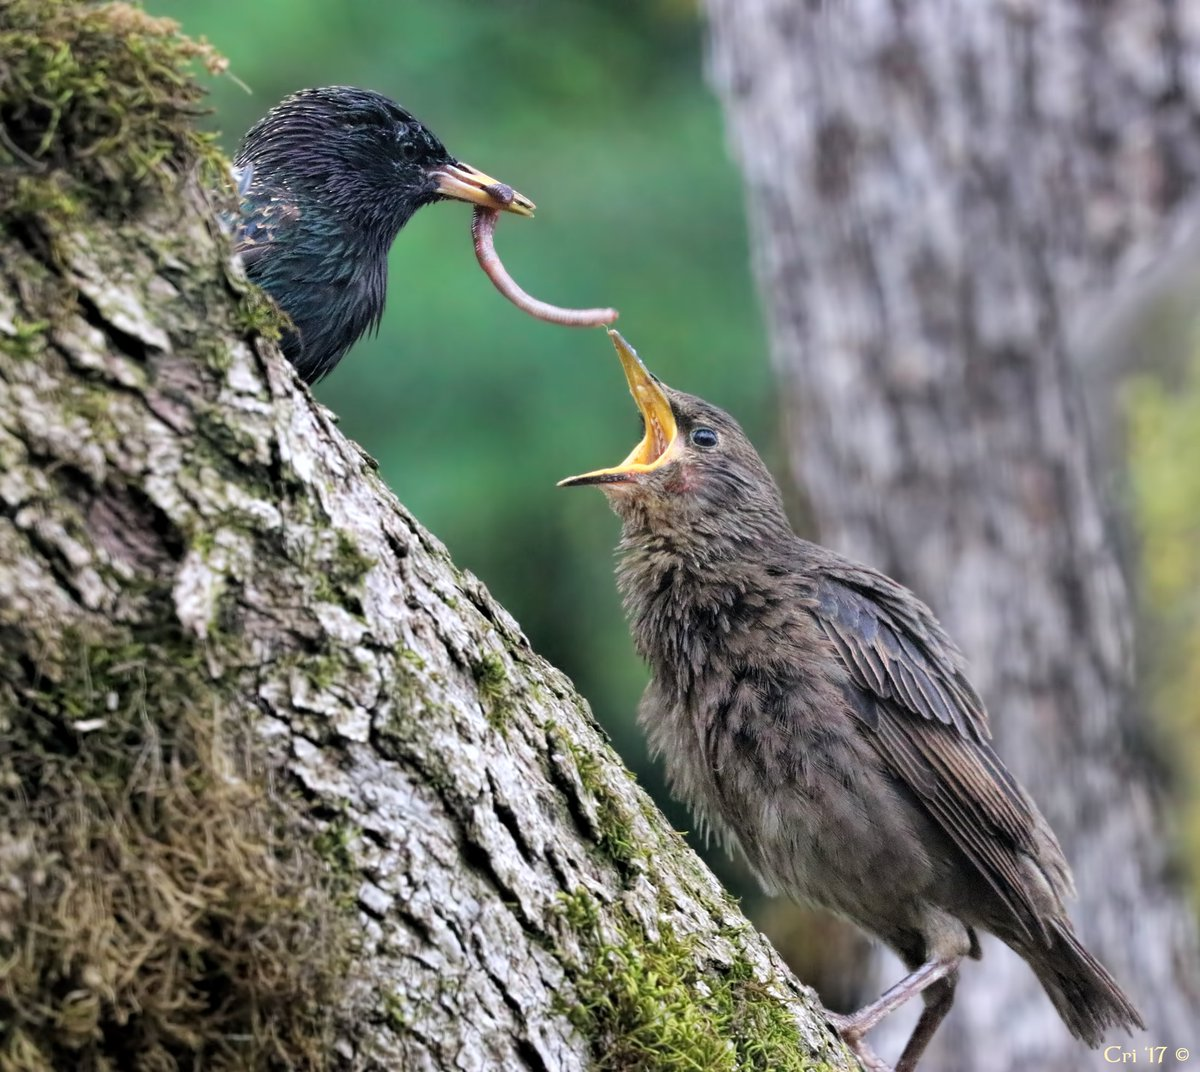 STARLINGS in DECLINE on Twitter: